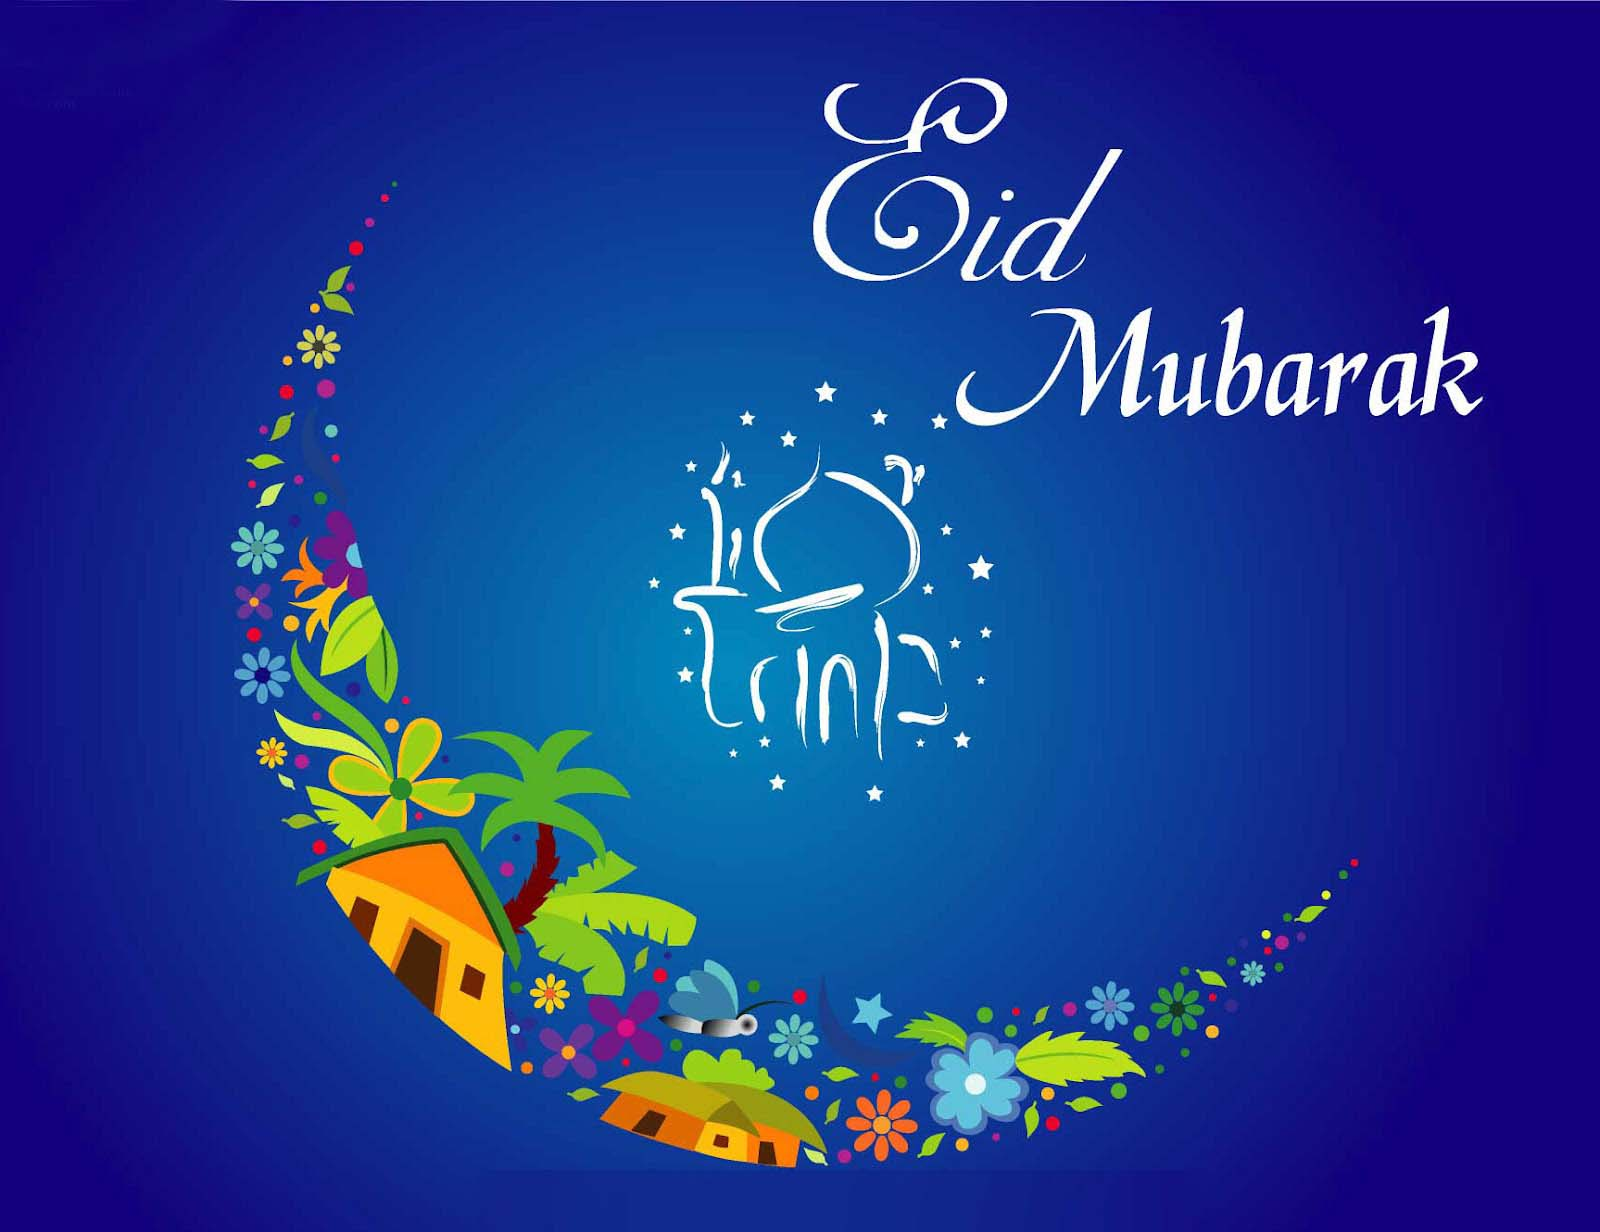 Eid mubarak pics shayari image sms wallpaper messages quotes hd free eid mubarak 2015 photos sms pics m4hsunfo